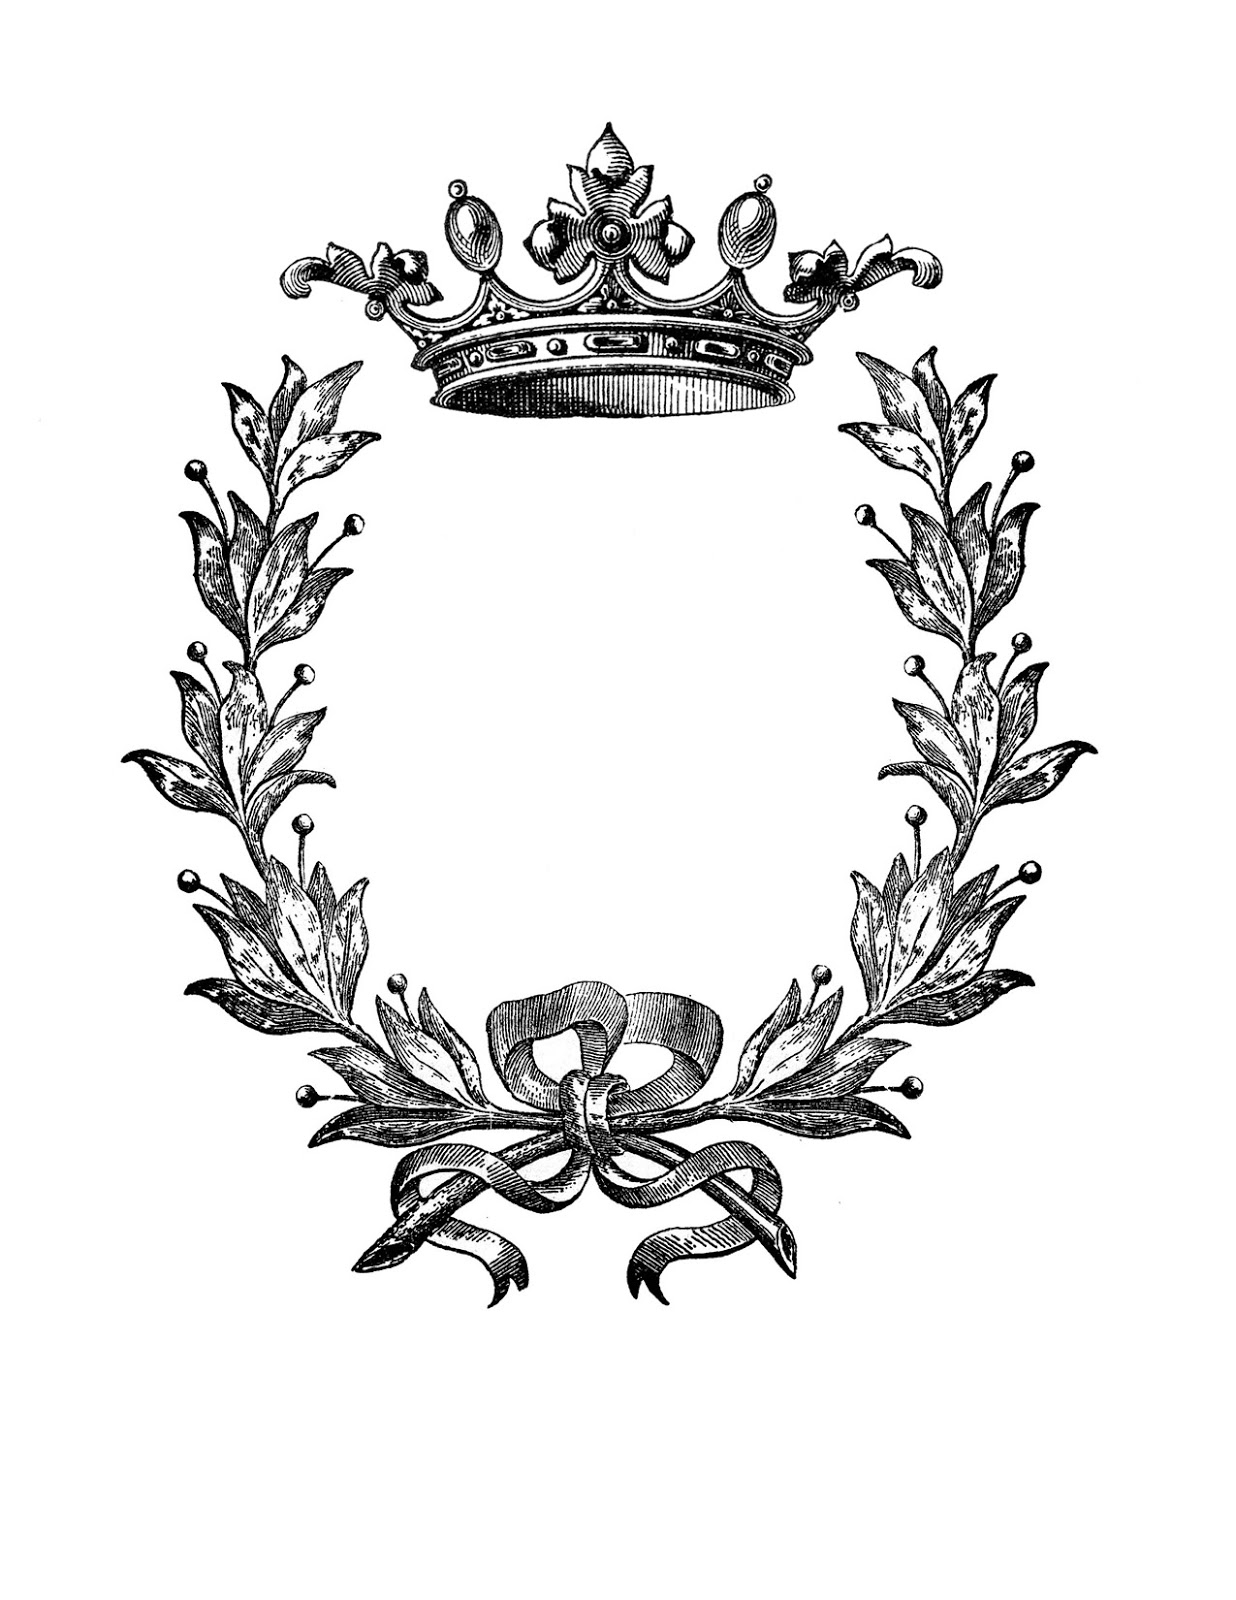 Wreath clipart crown Transfer with Printable Transfer Crown